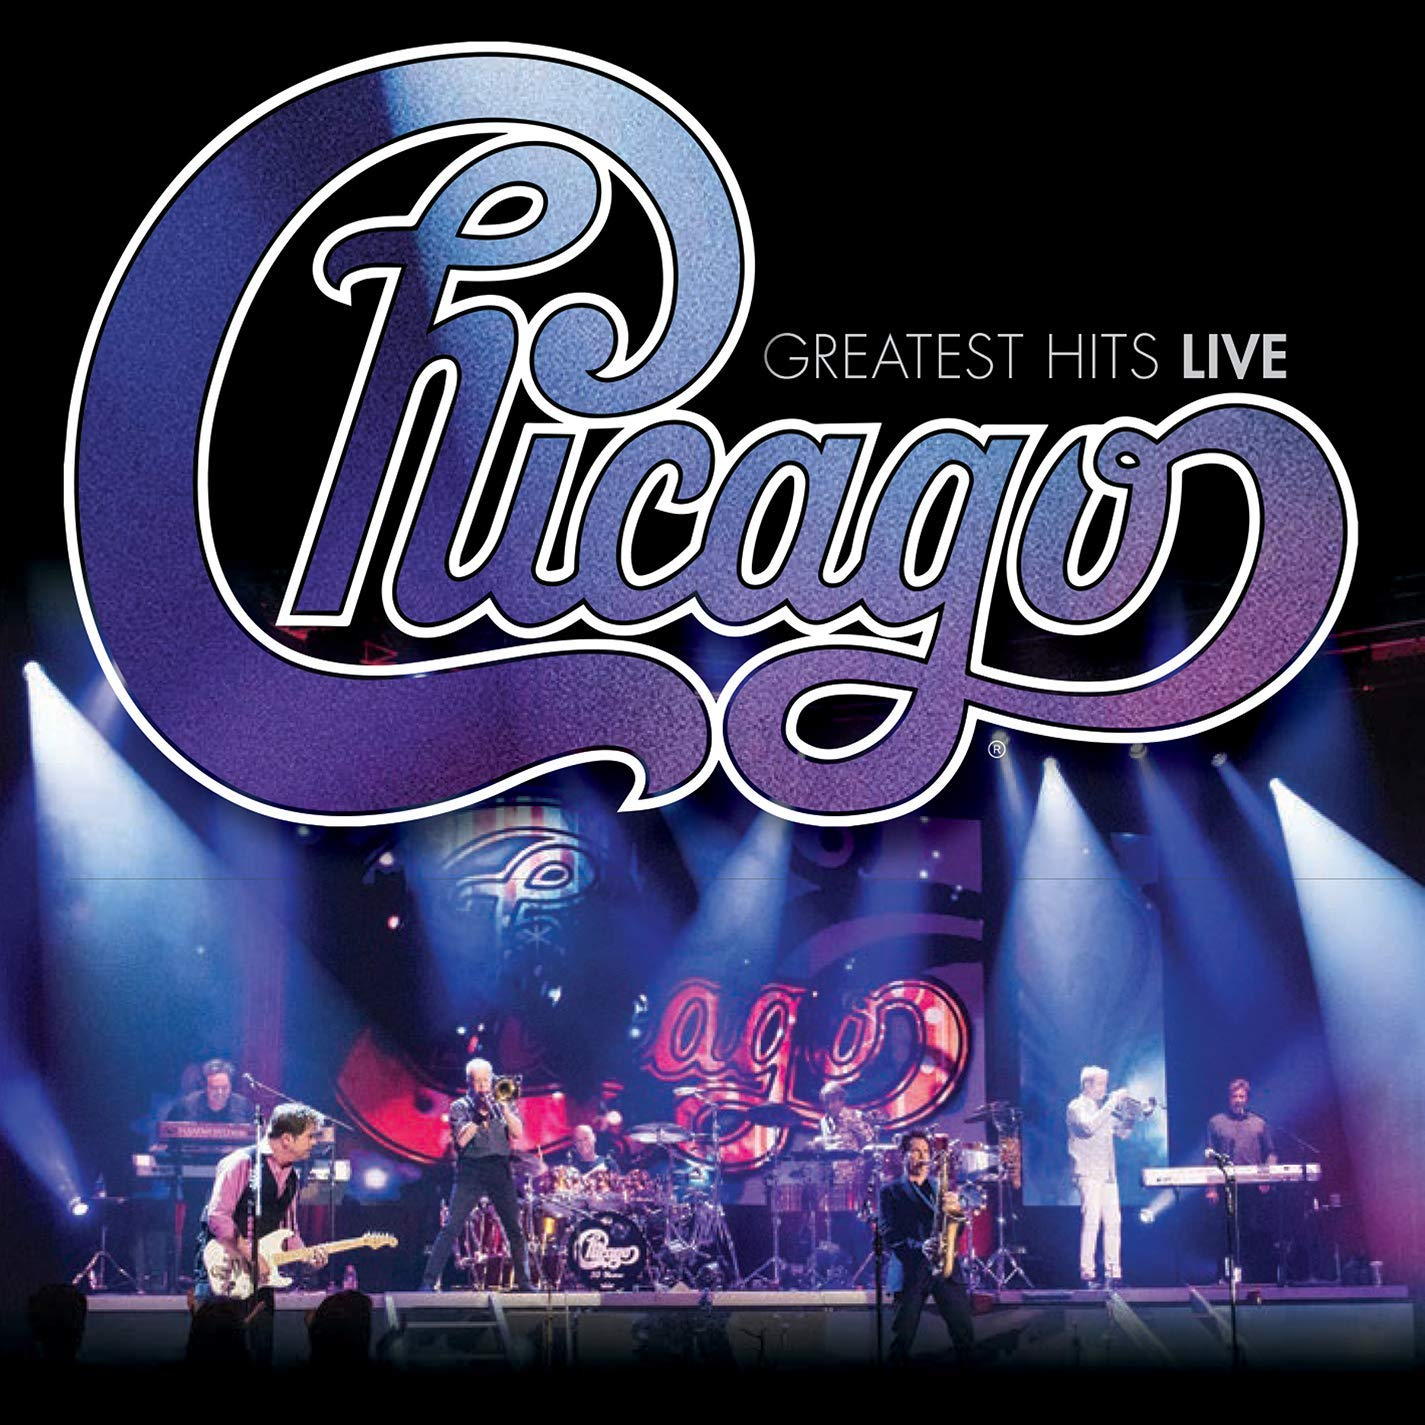 Chicago Chicago. Greatest Hits Live (CD + DVD) queen greatest hits cd